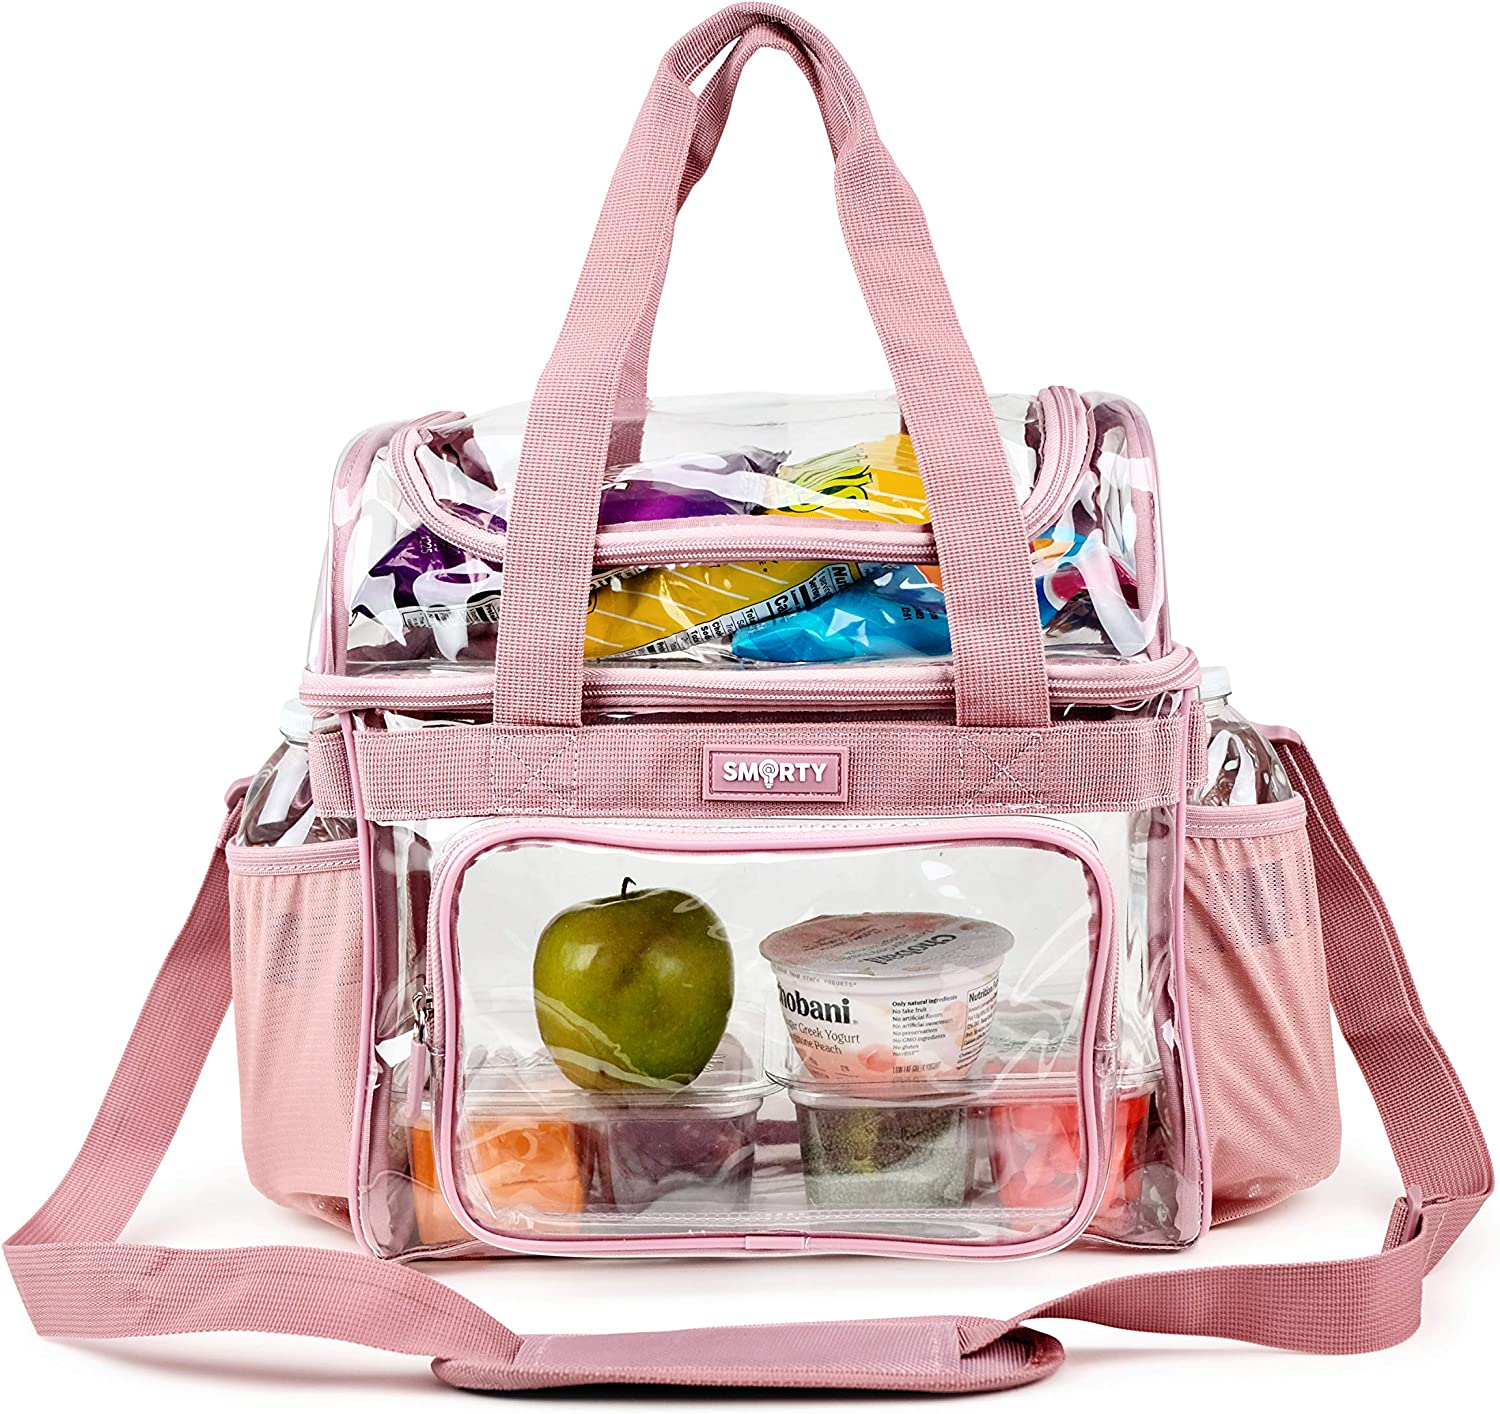 Heavy Duty Clear Lunch Tote Stadium Approved Size Crossbody Diaper Travel Cosmetic Makeup Bag for NFL NCAA PGA NASCAR Games Concerts Corrections Correctional Officers Work Box (Pink, 12 x 6 x 12)